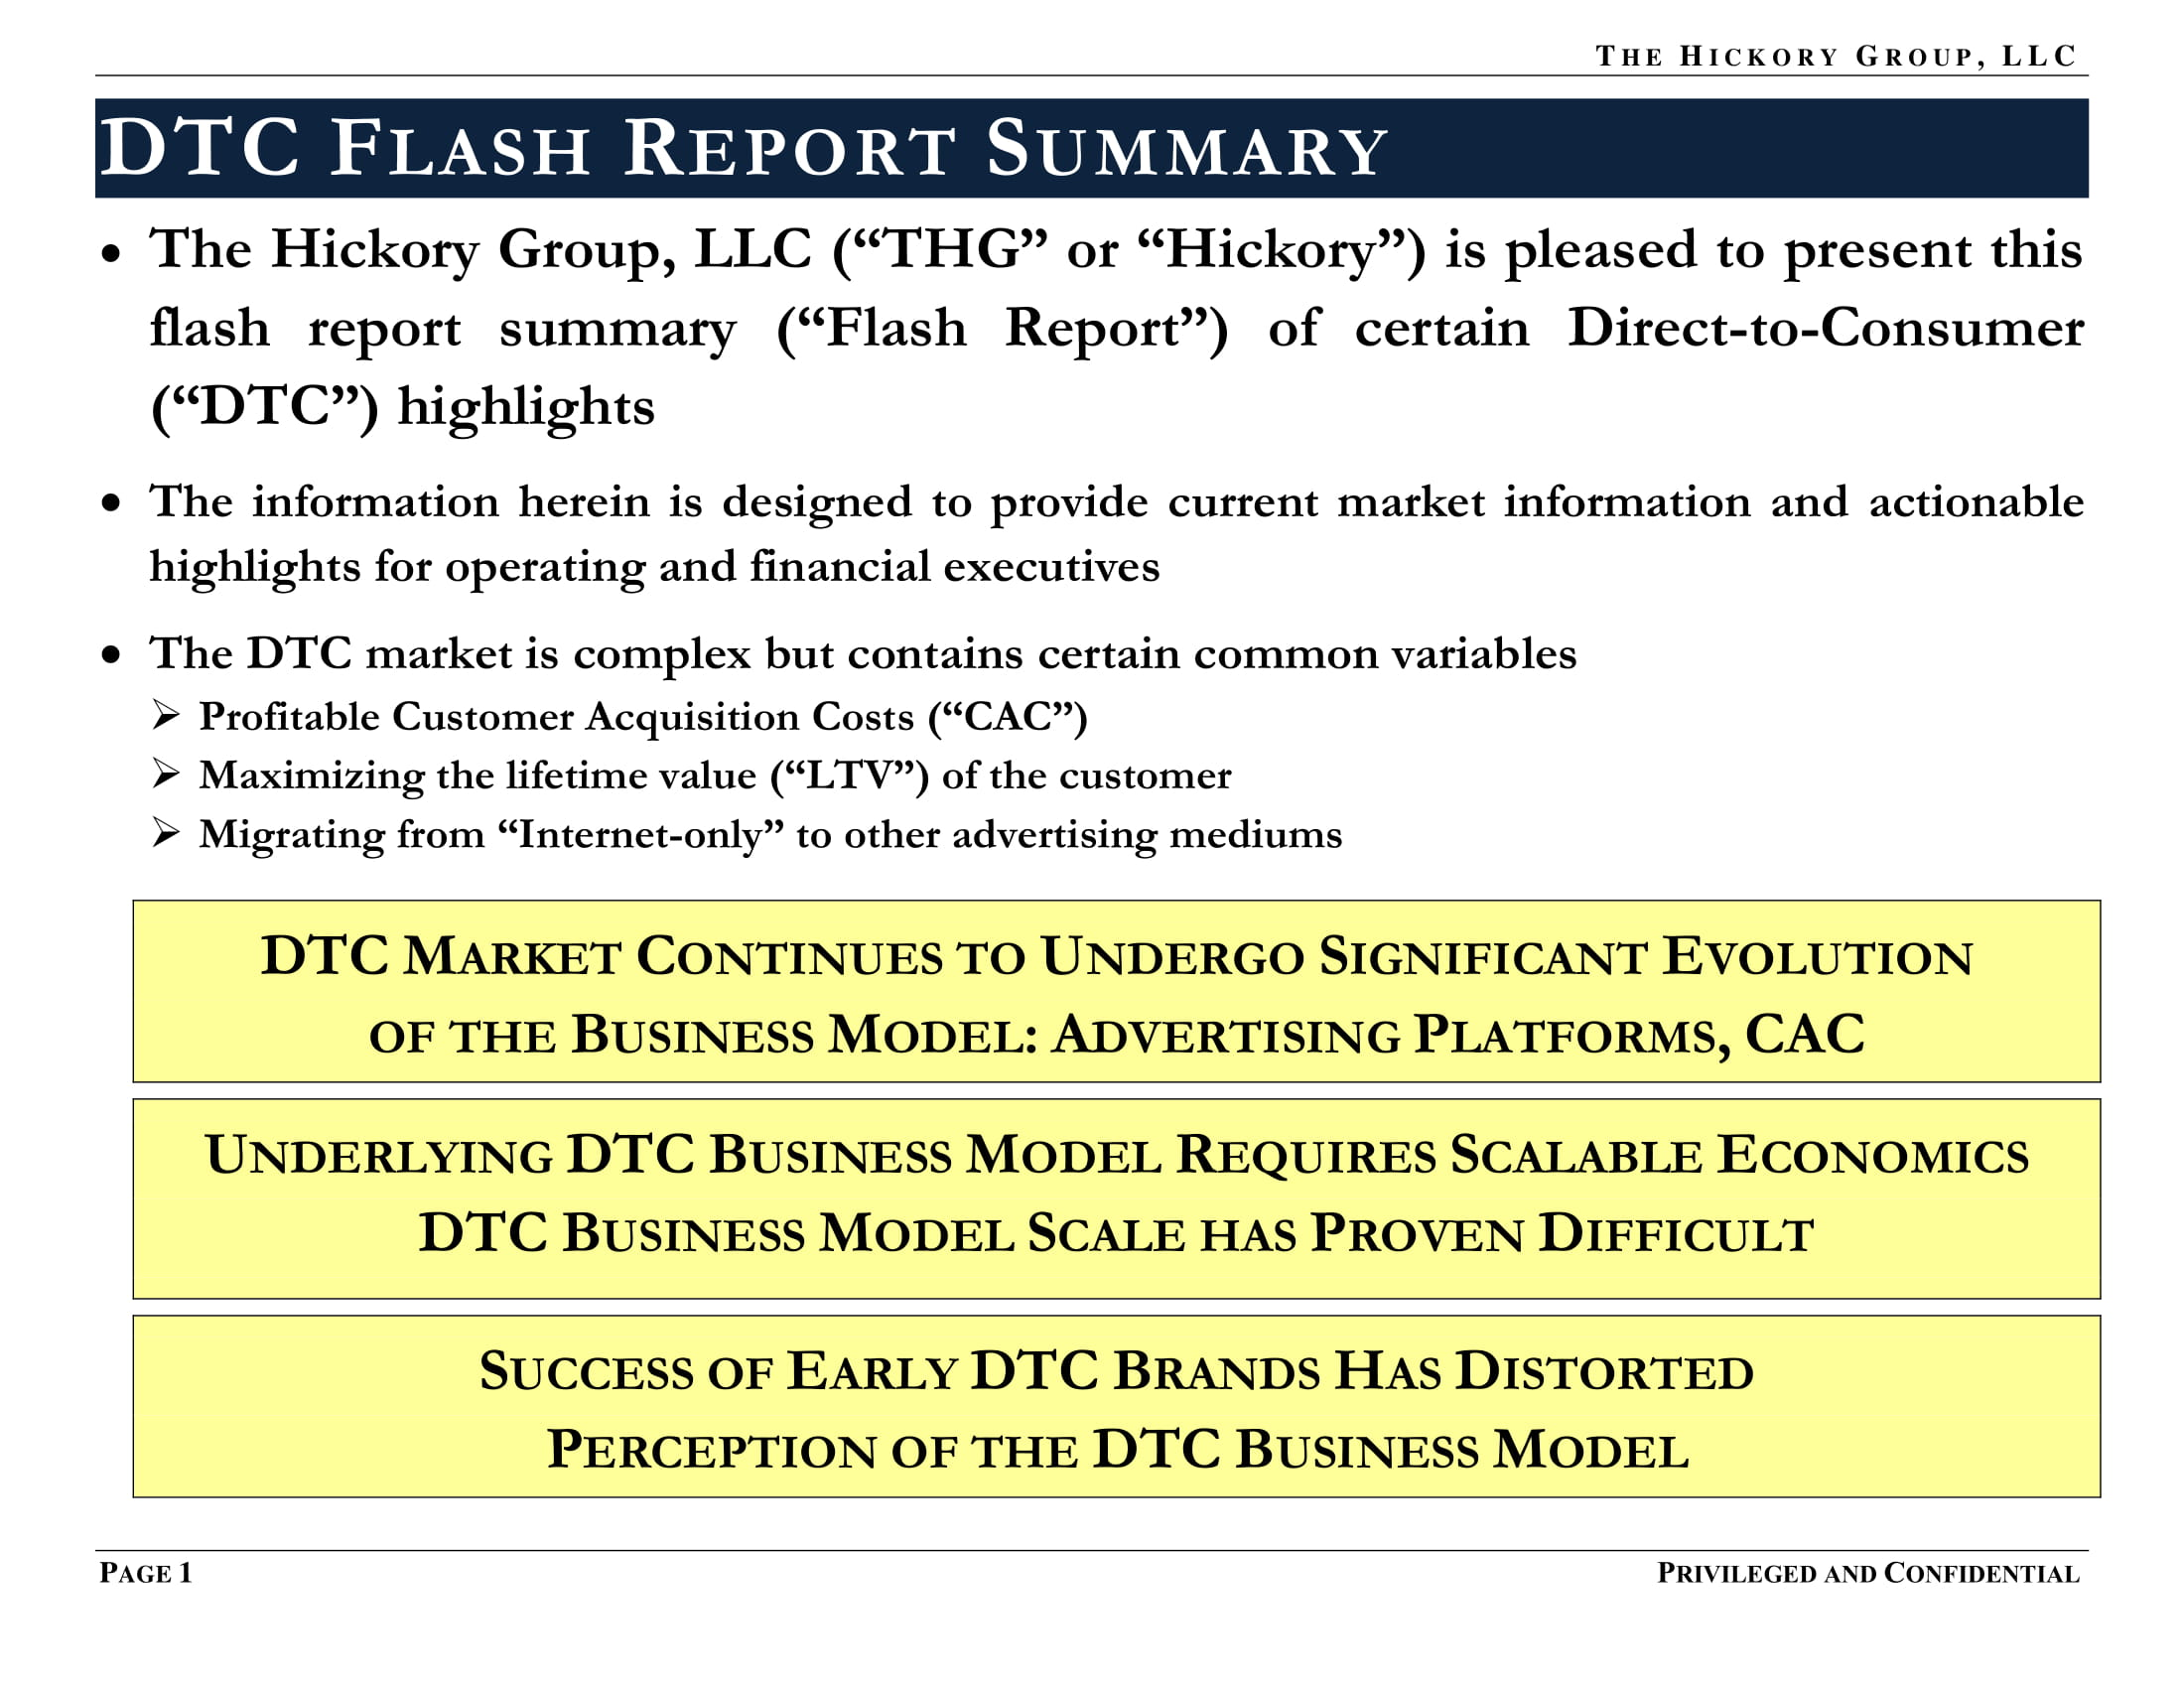 FINAL_THG DTC Flash Report_Q2 2019 _ Public Release (Privileged and Confidential)-03.jpg